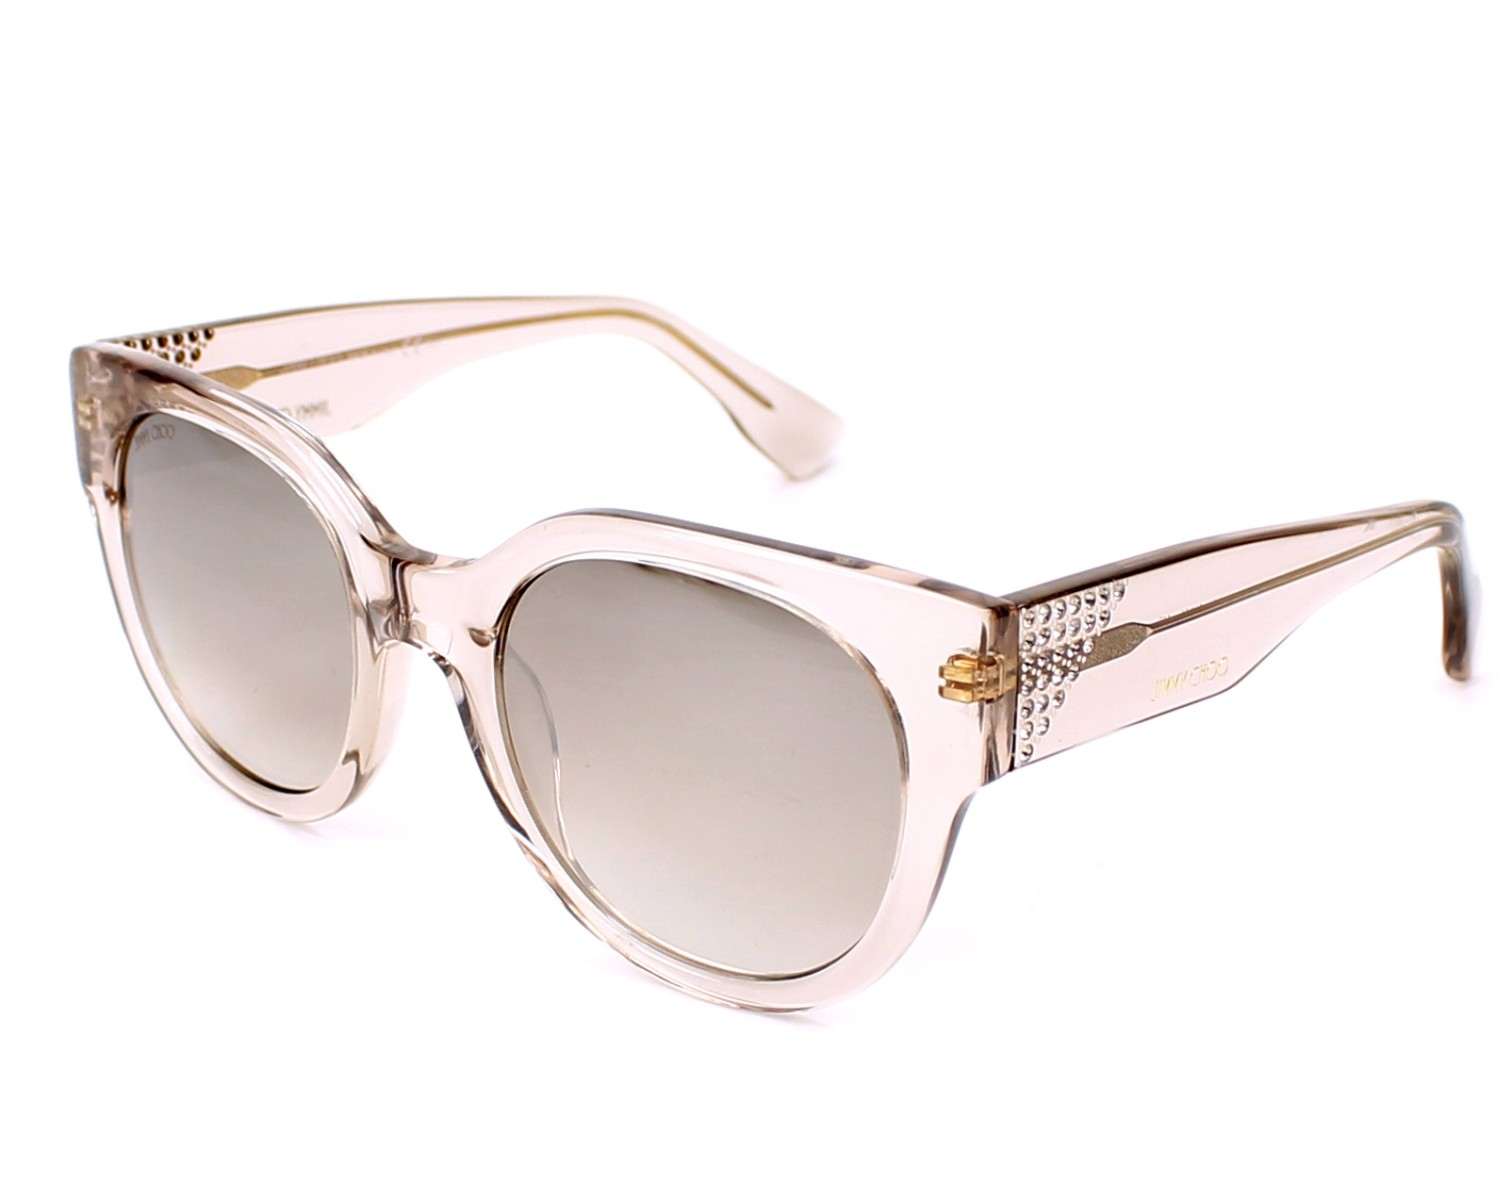 jimmy choo sunglasses online wm6r  Jimmy Choo has been added to your cart